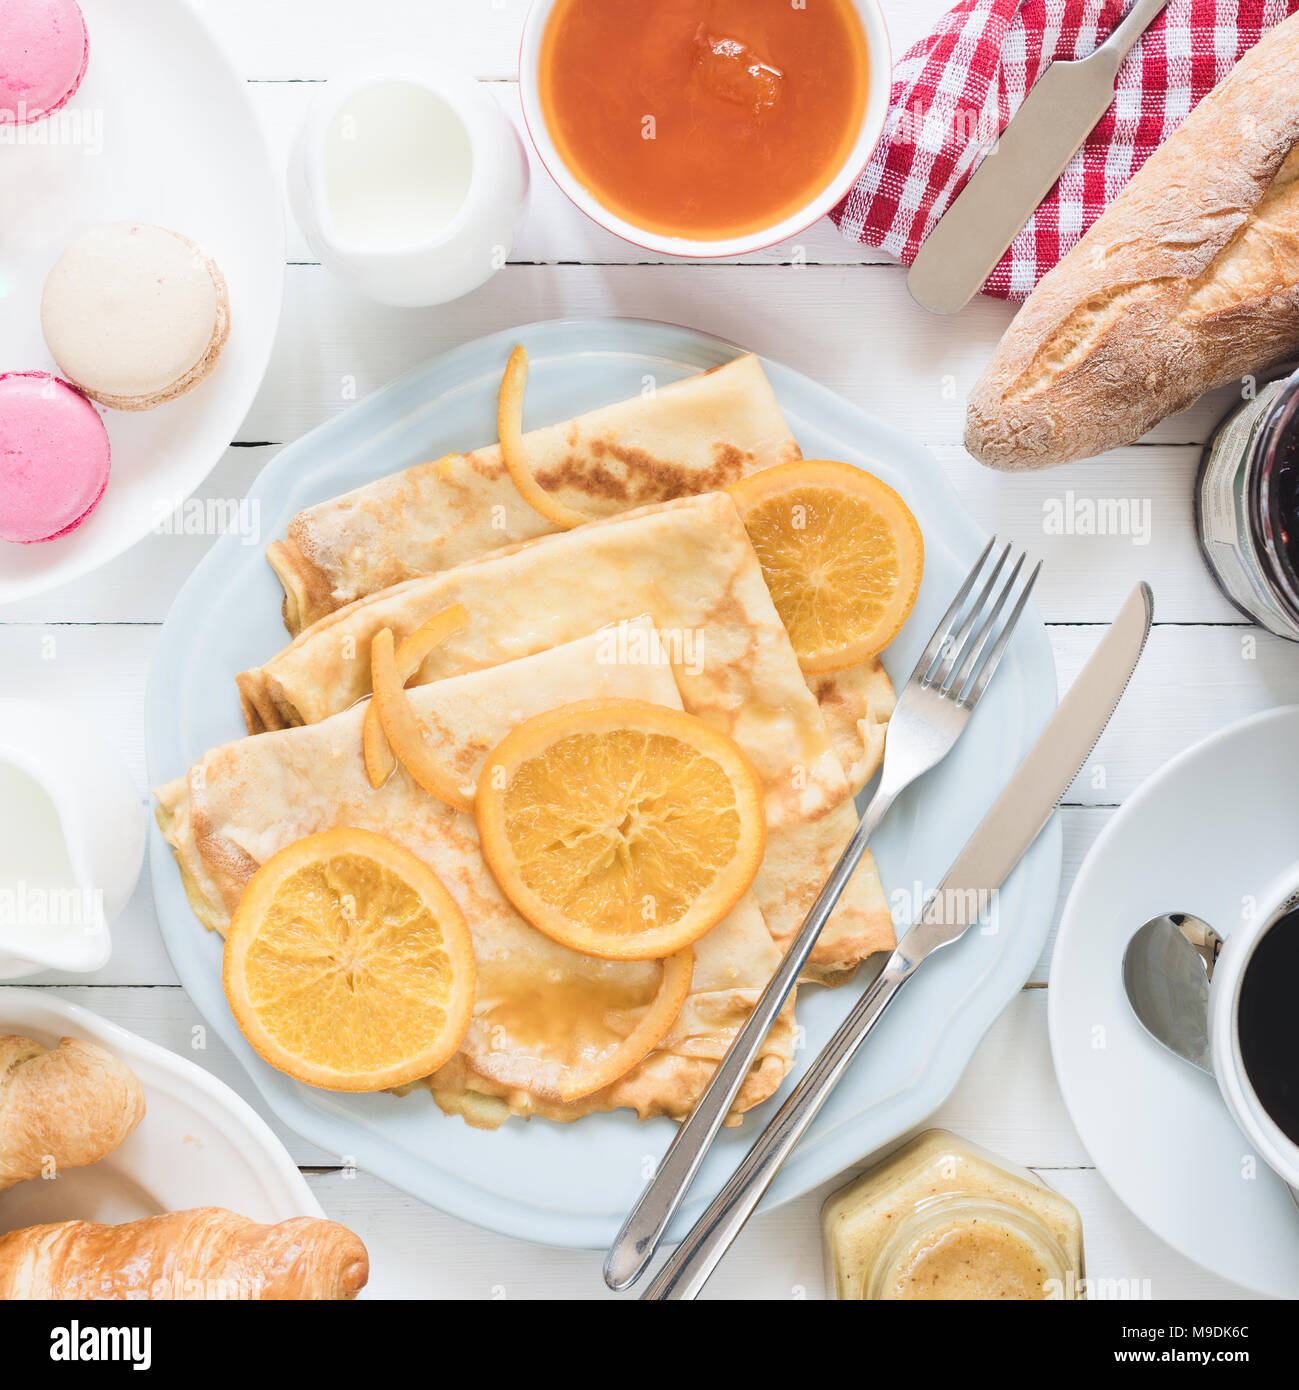 Crepes Suzette on blue plate, jam, baguette, coffee and macarons. Traditional french breakfast. Top view, square crop - Stock Image